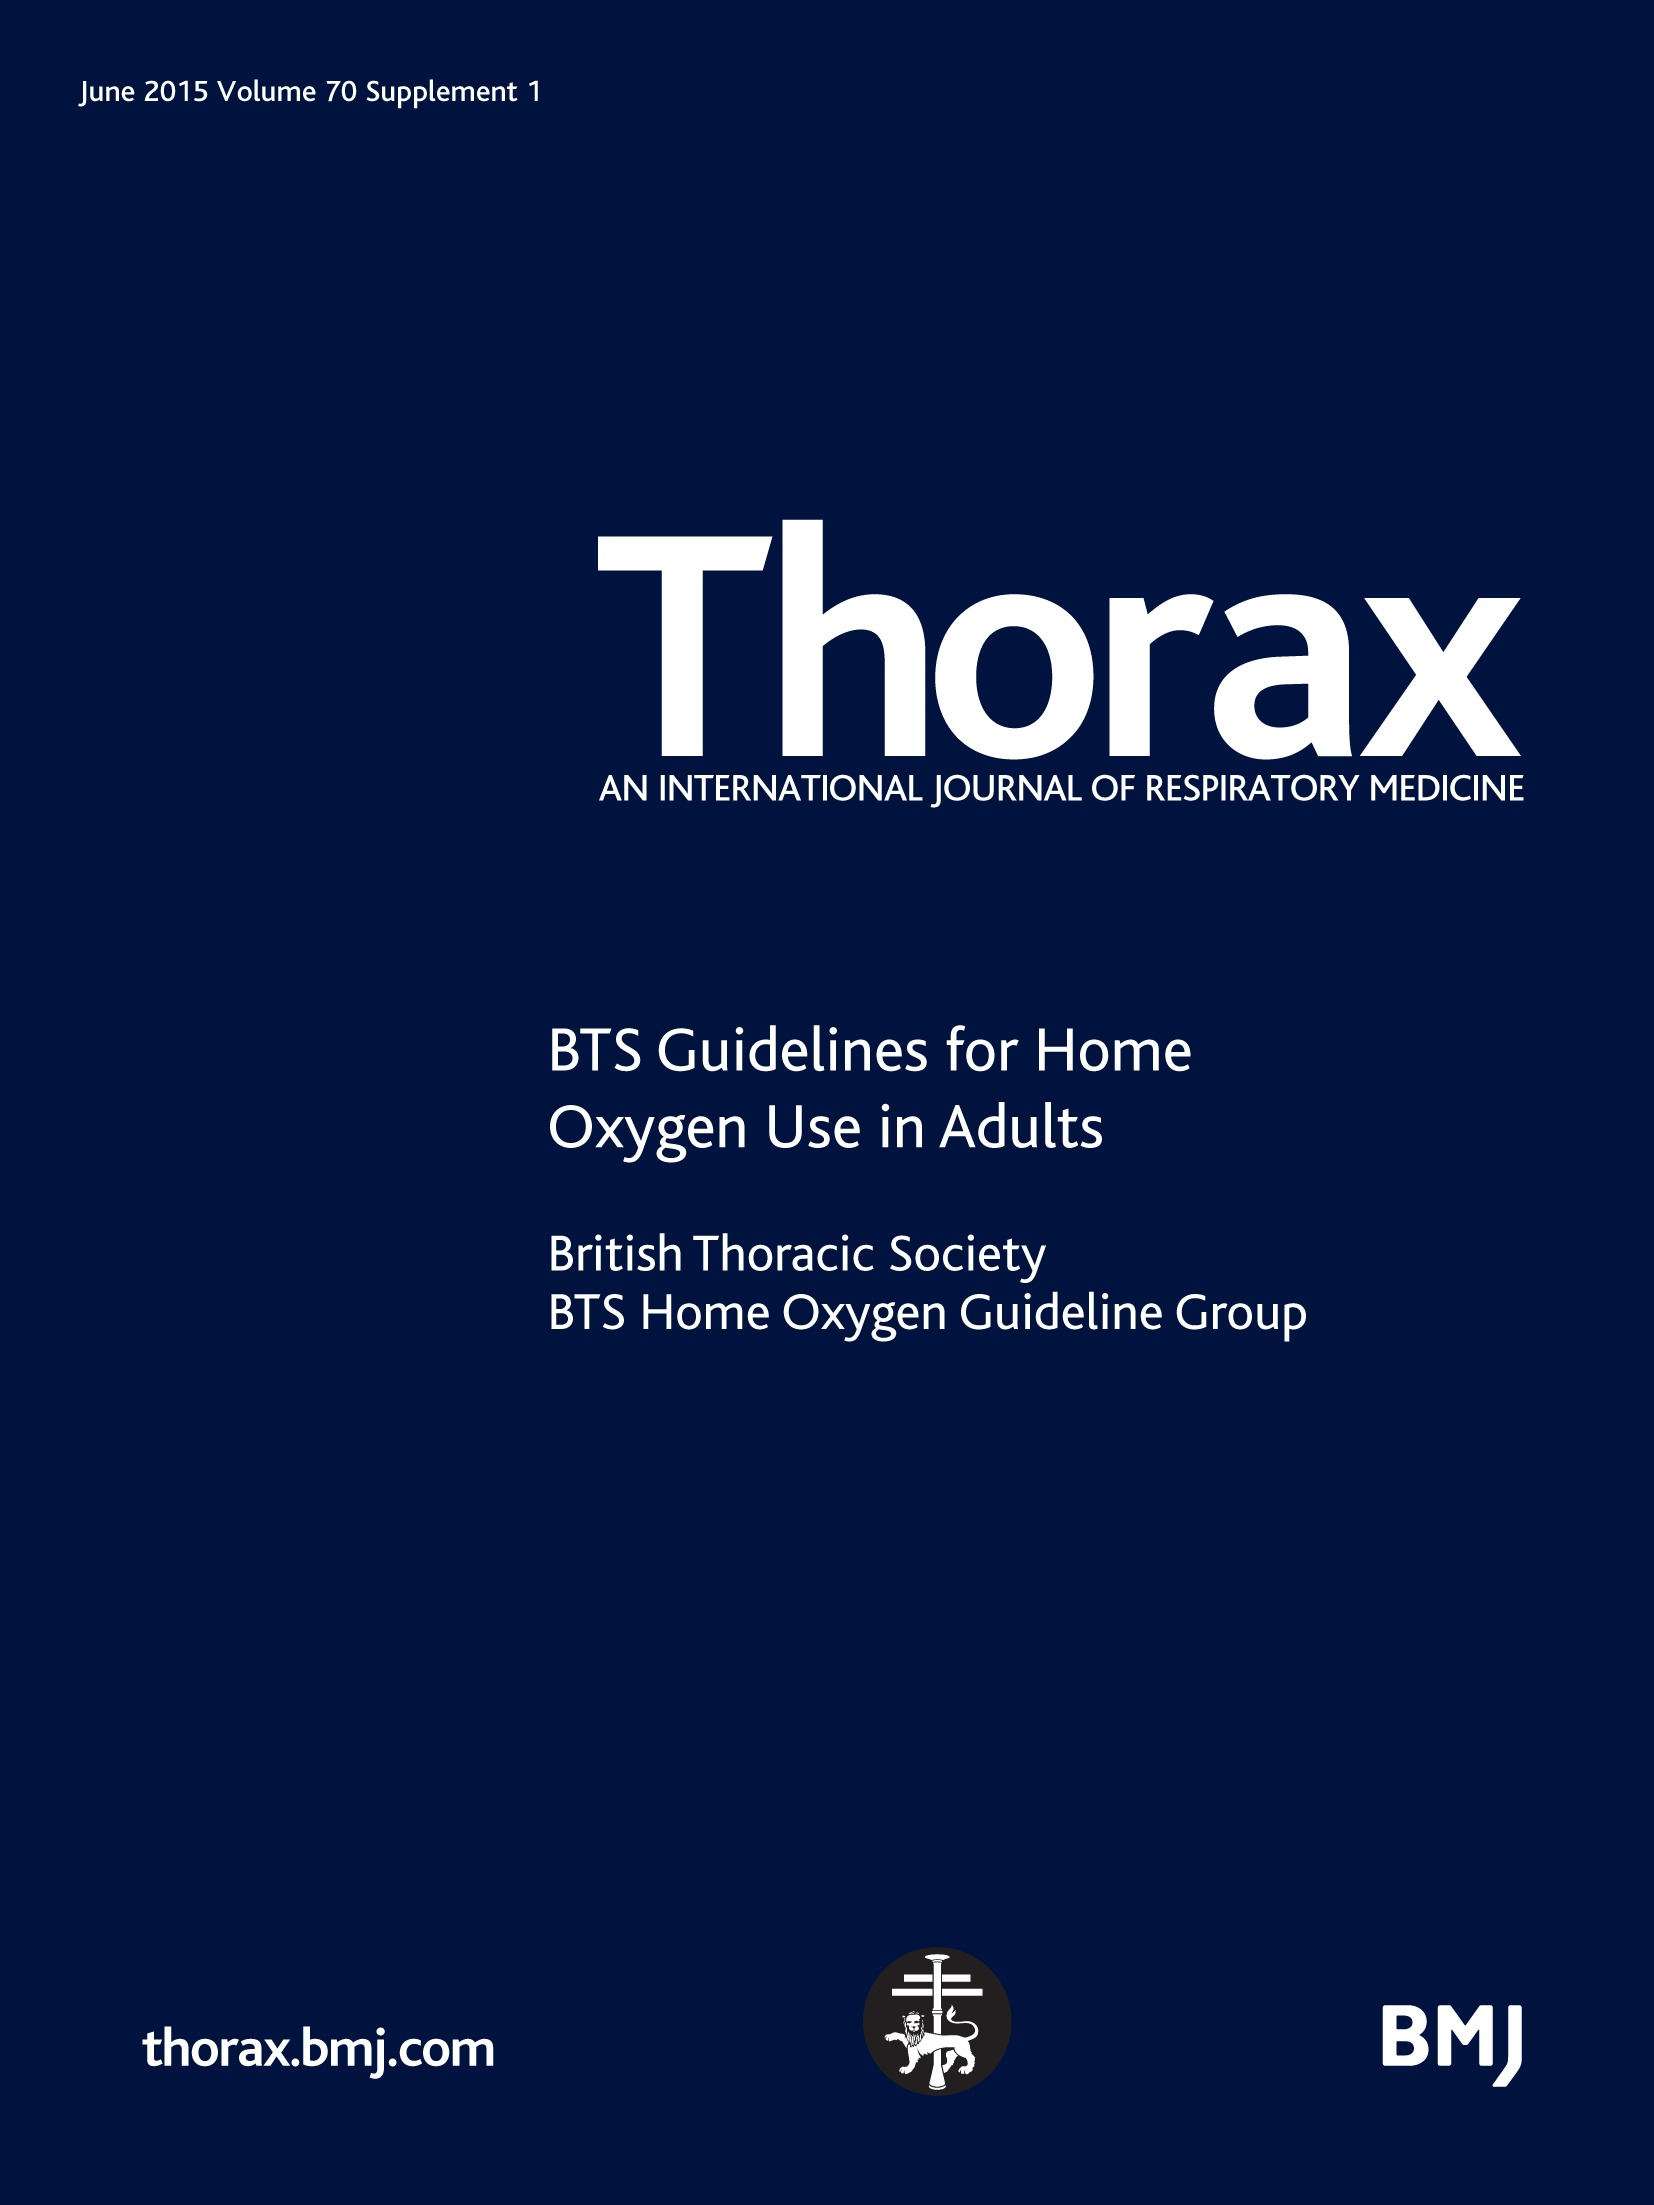 British Thoracic Society guidelines for home oxygen use in